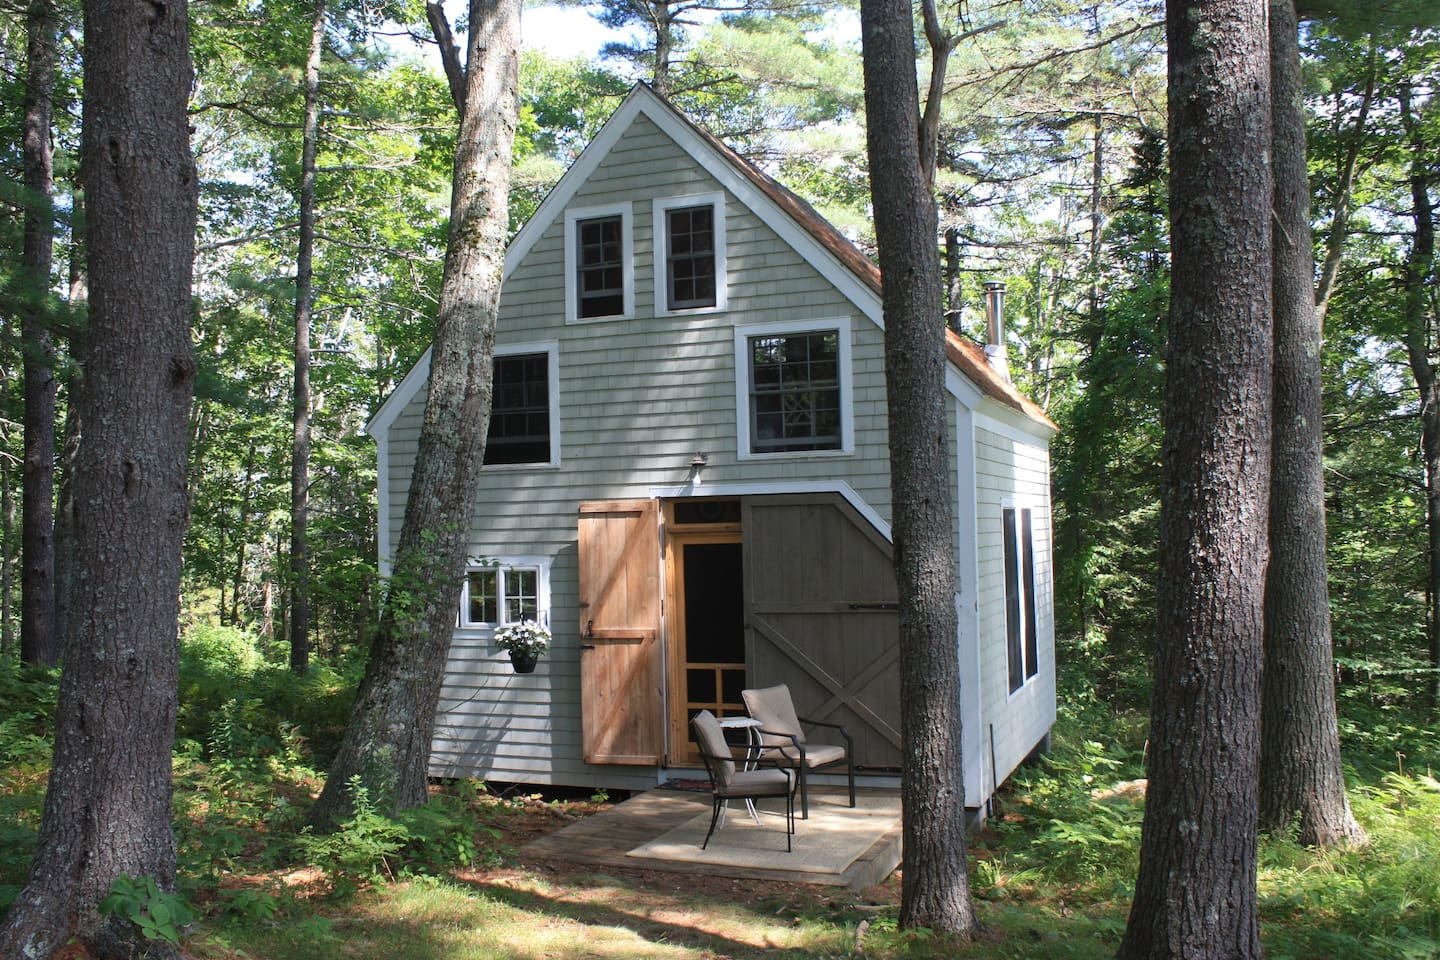 Rustic 19' x 16' two-story cottage in the woods.